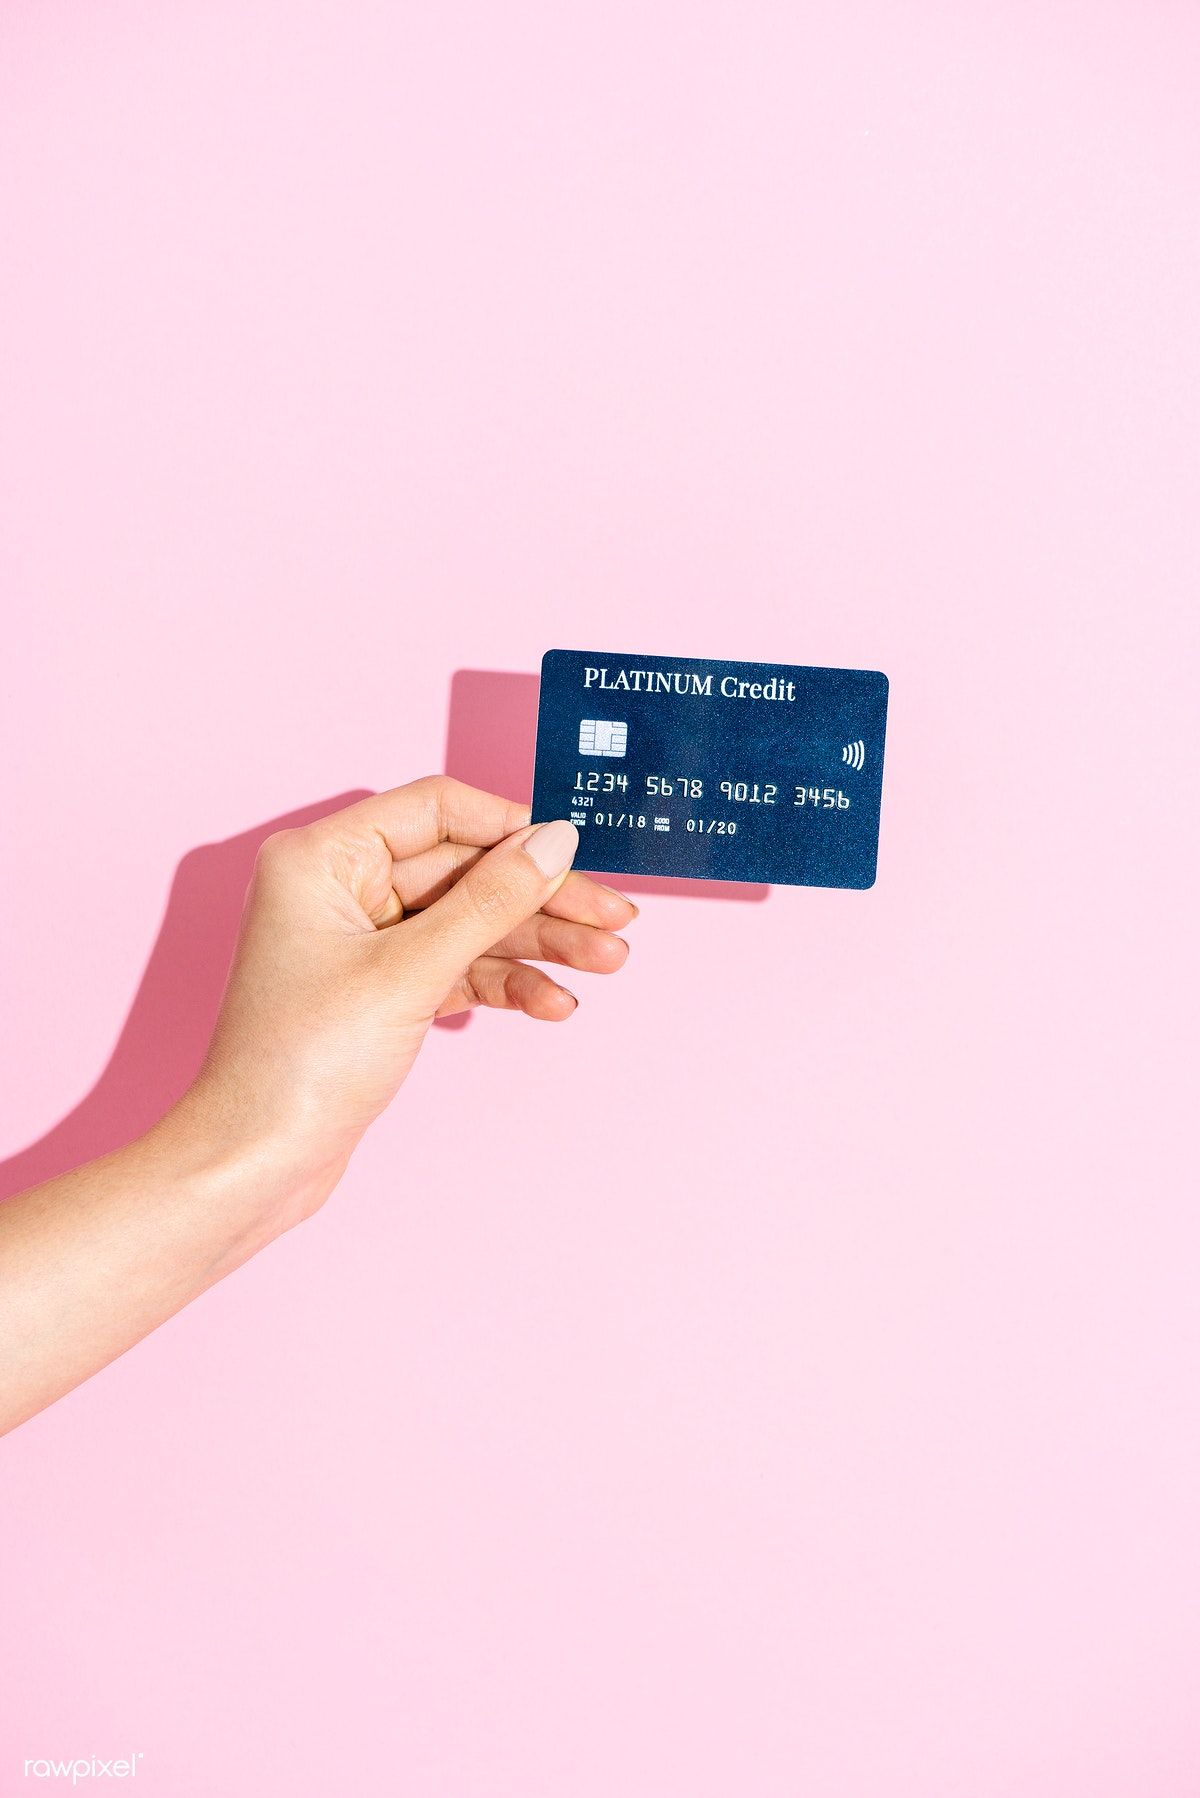 Download Premium Image Of Woman Holding A Credit Card Against A Pink Credit Card Icon Credit Card Images Card Illustration